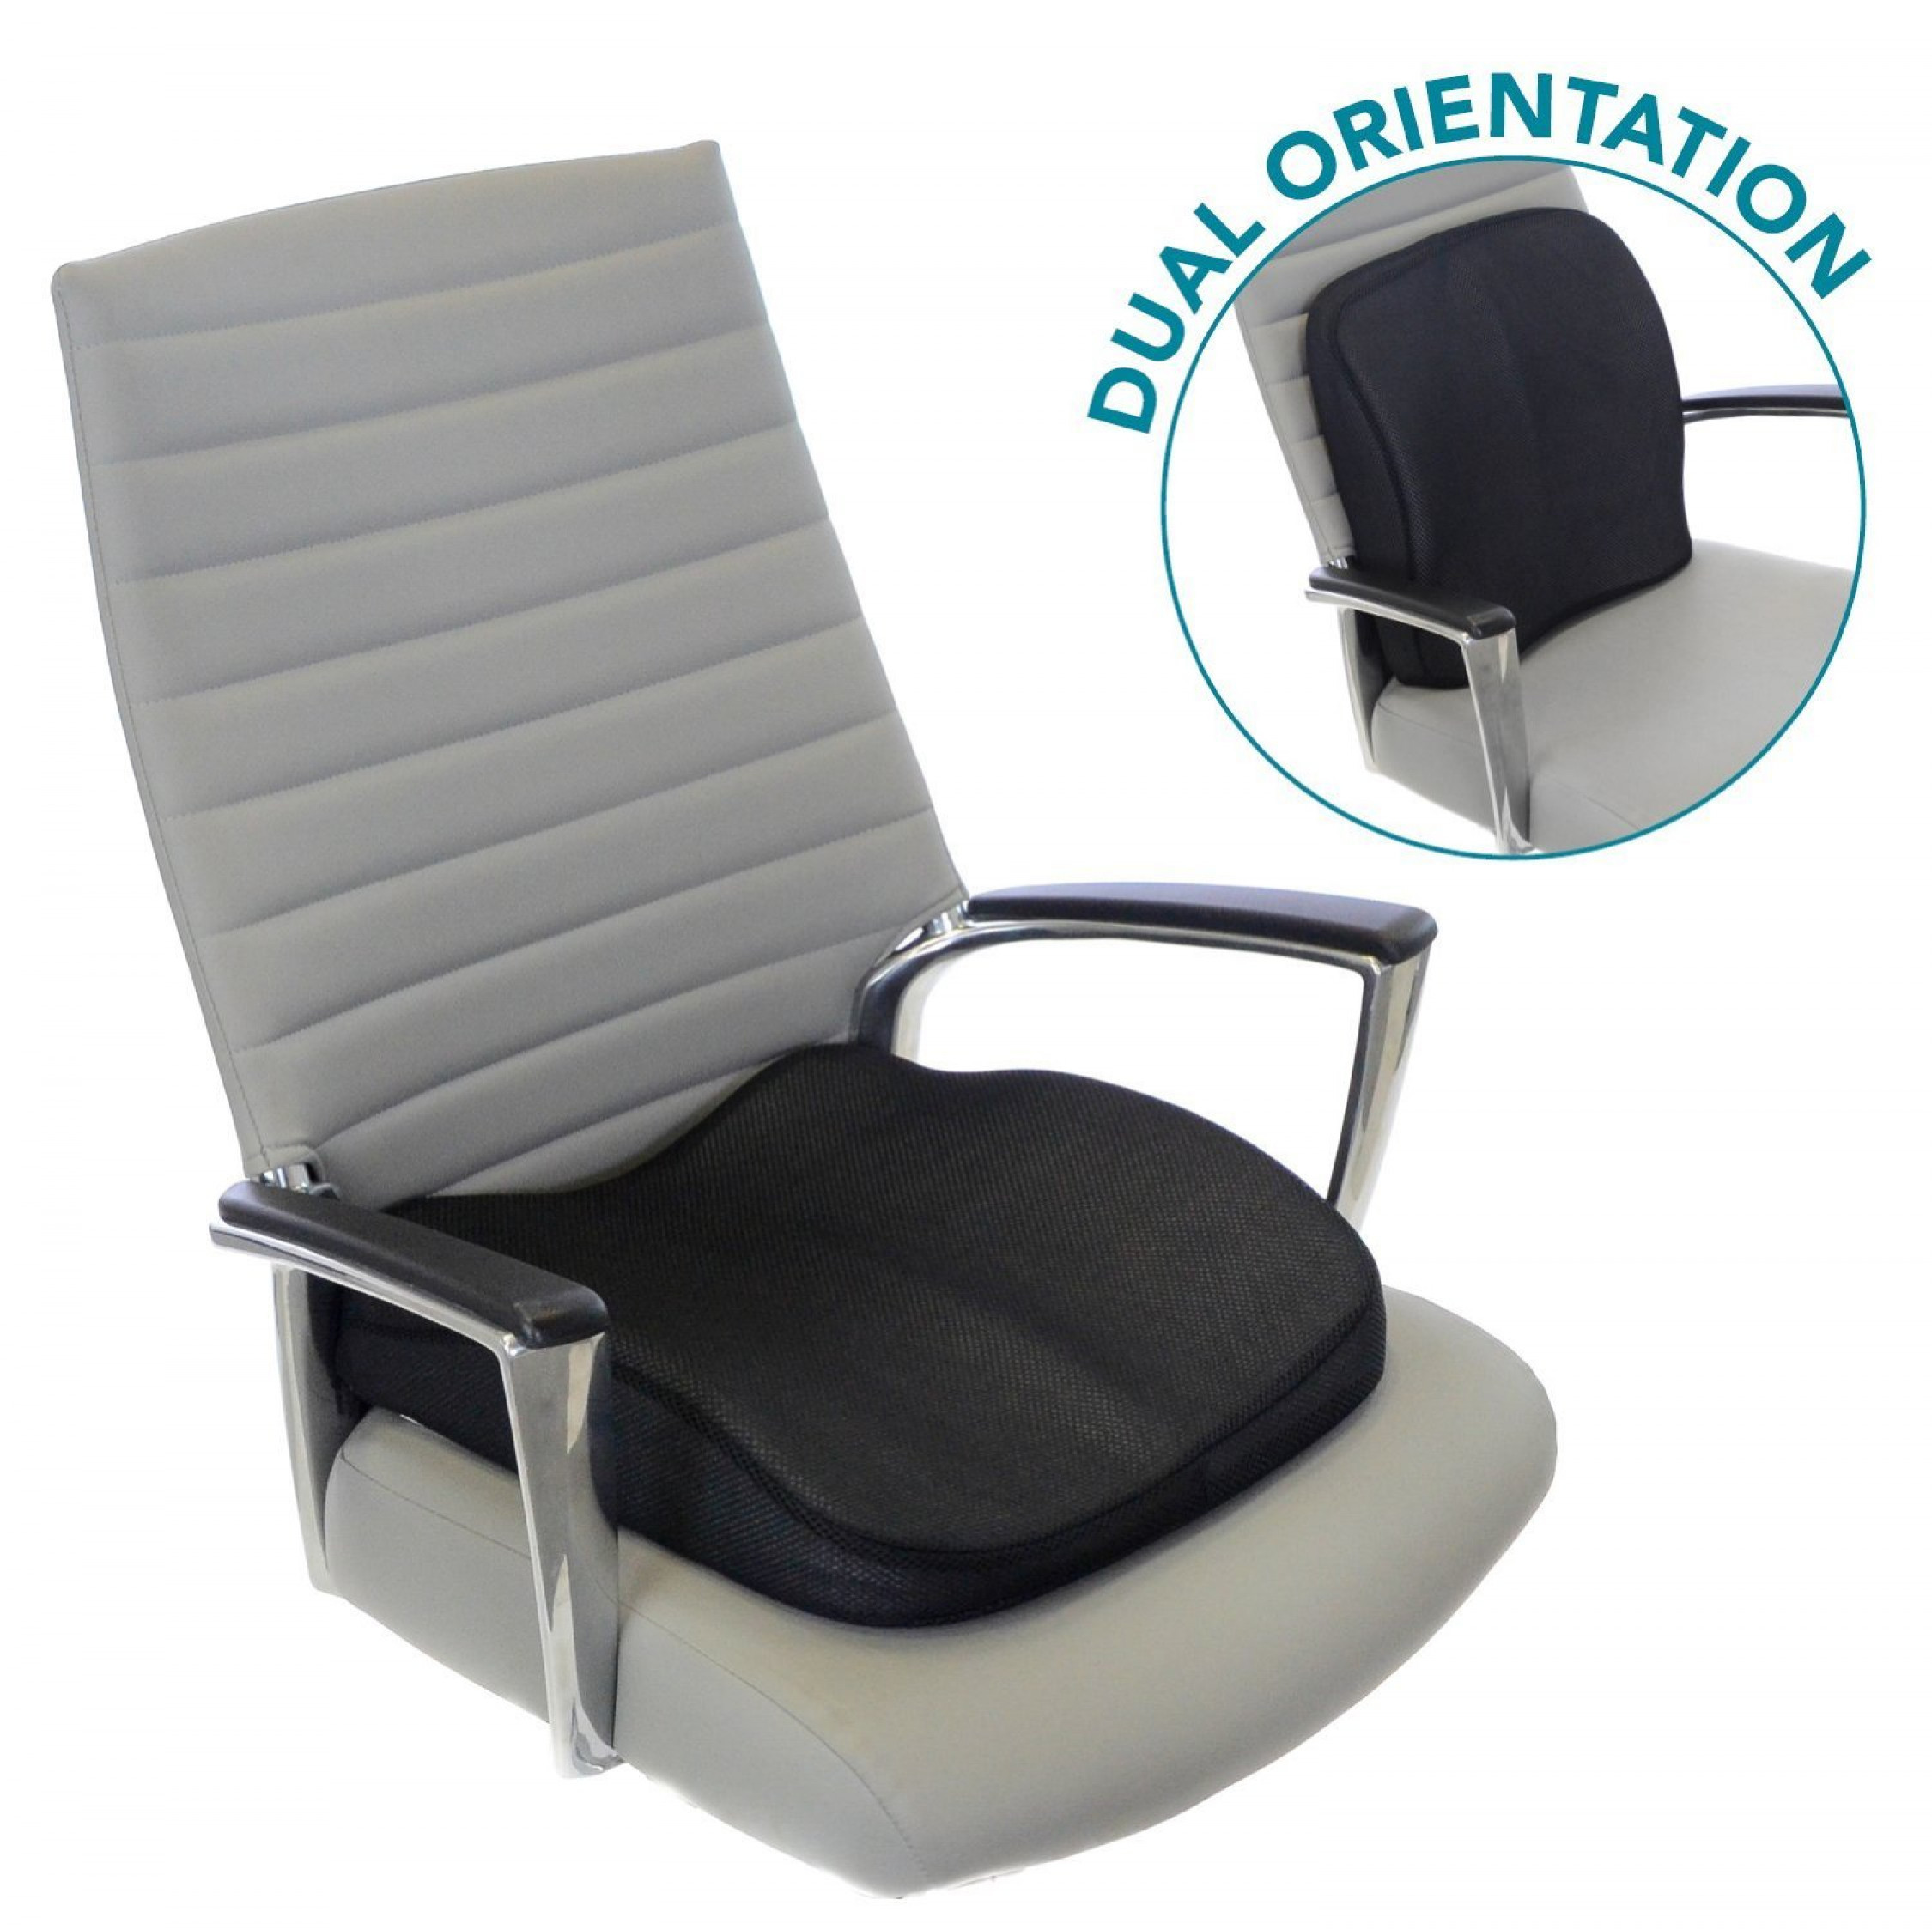 Best ideas about Best Seat Cushion For Office Chair . Save or Pin Memory Foam Seat Cushion for Lower Back Support & Seat Now.